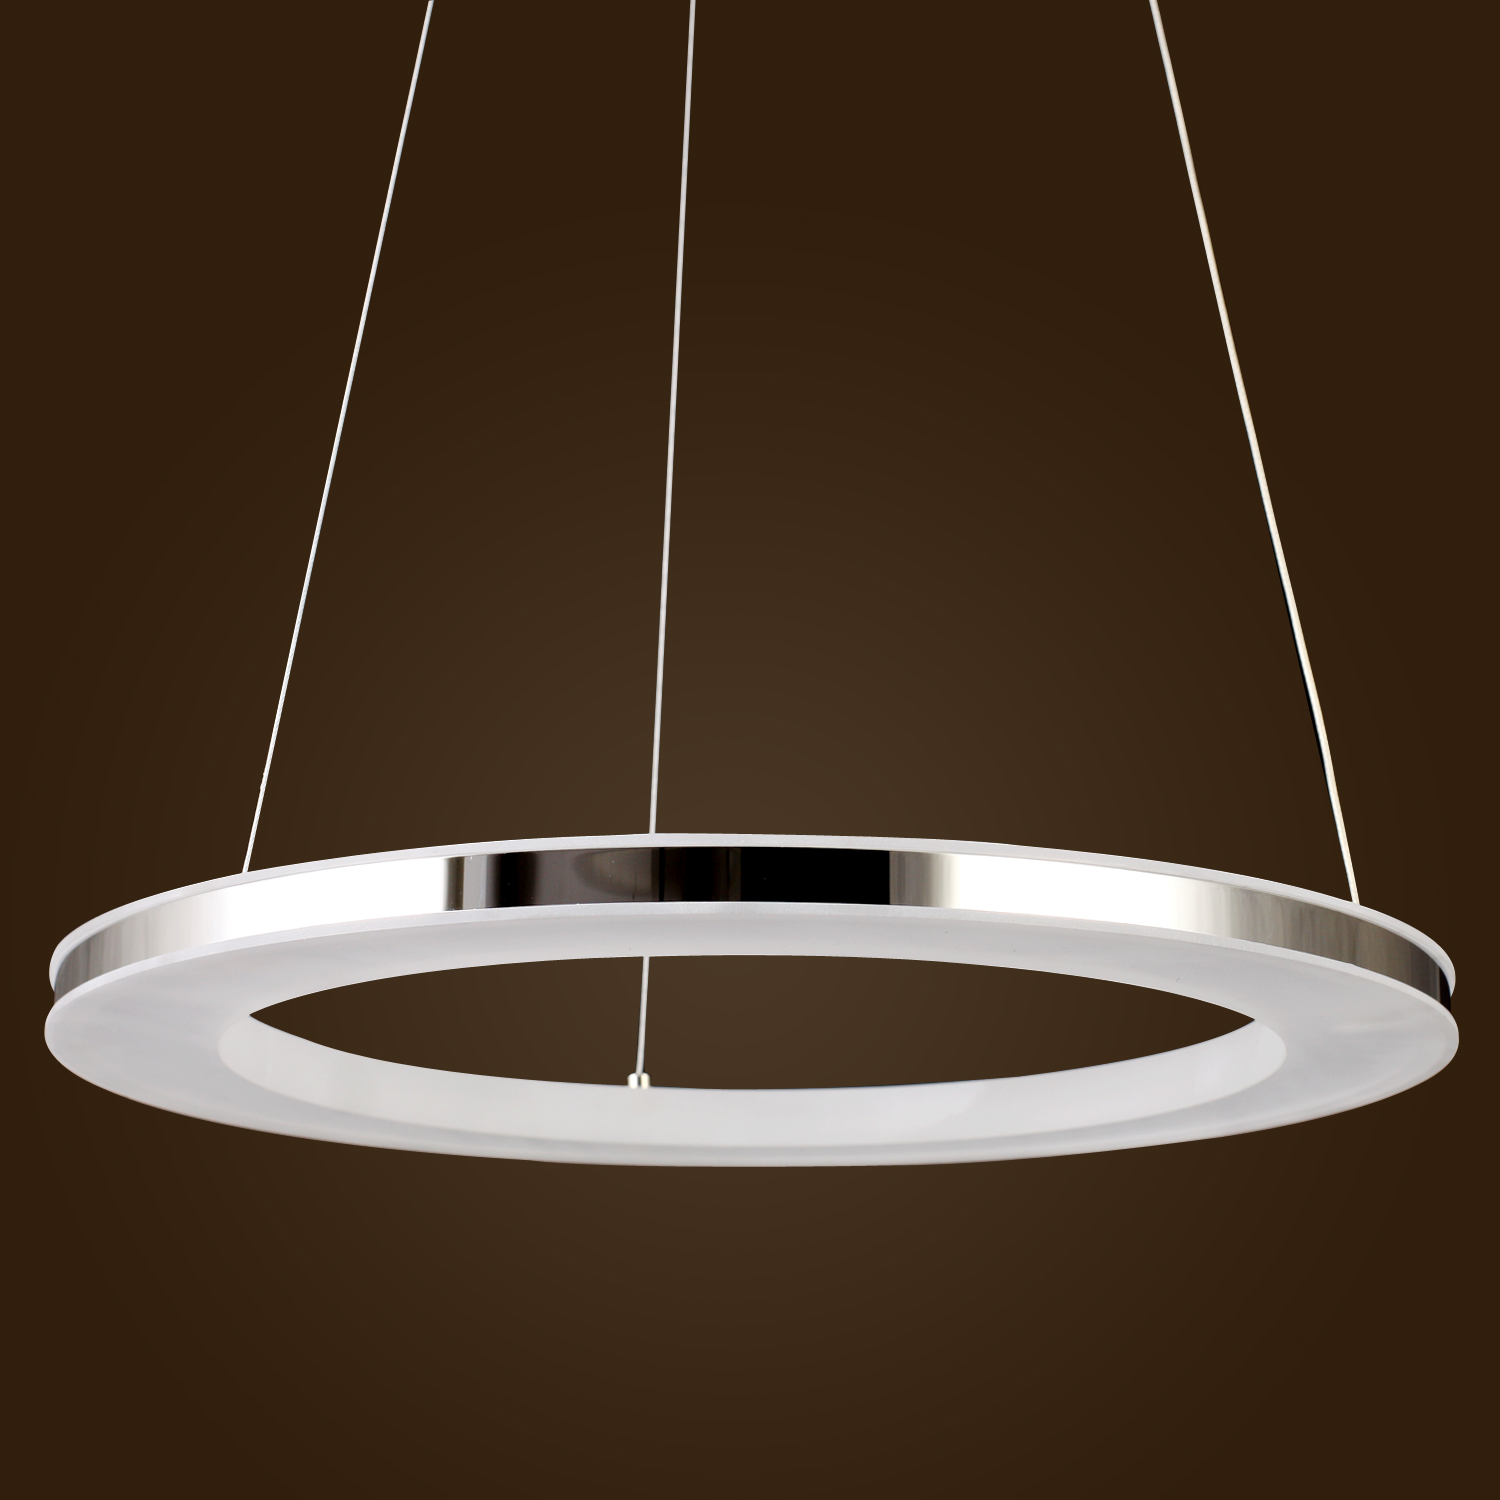 Acrylic led ring chandelier pendant lamp ceiling light lighting fixtures modern ebay - Chandelier ceiling lamp ...